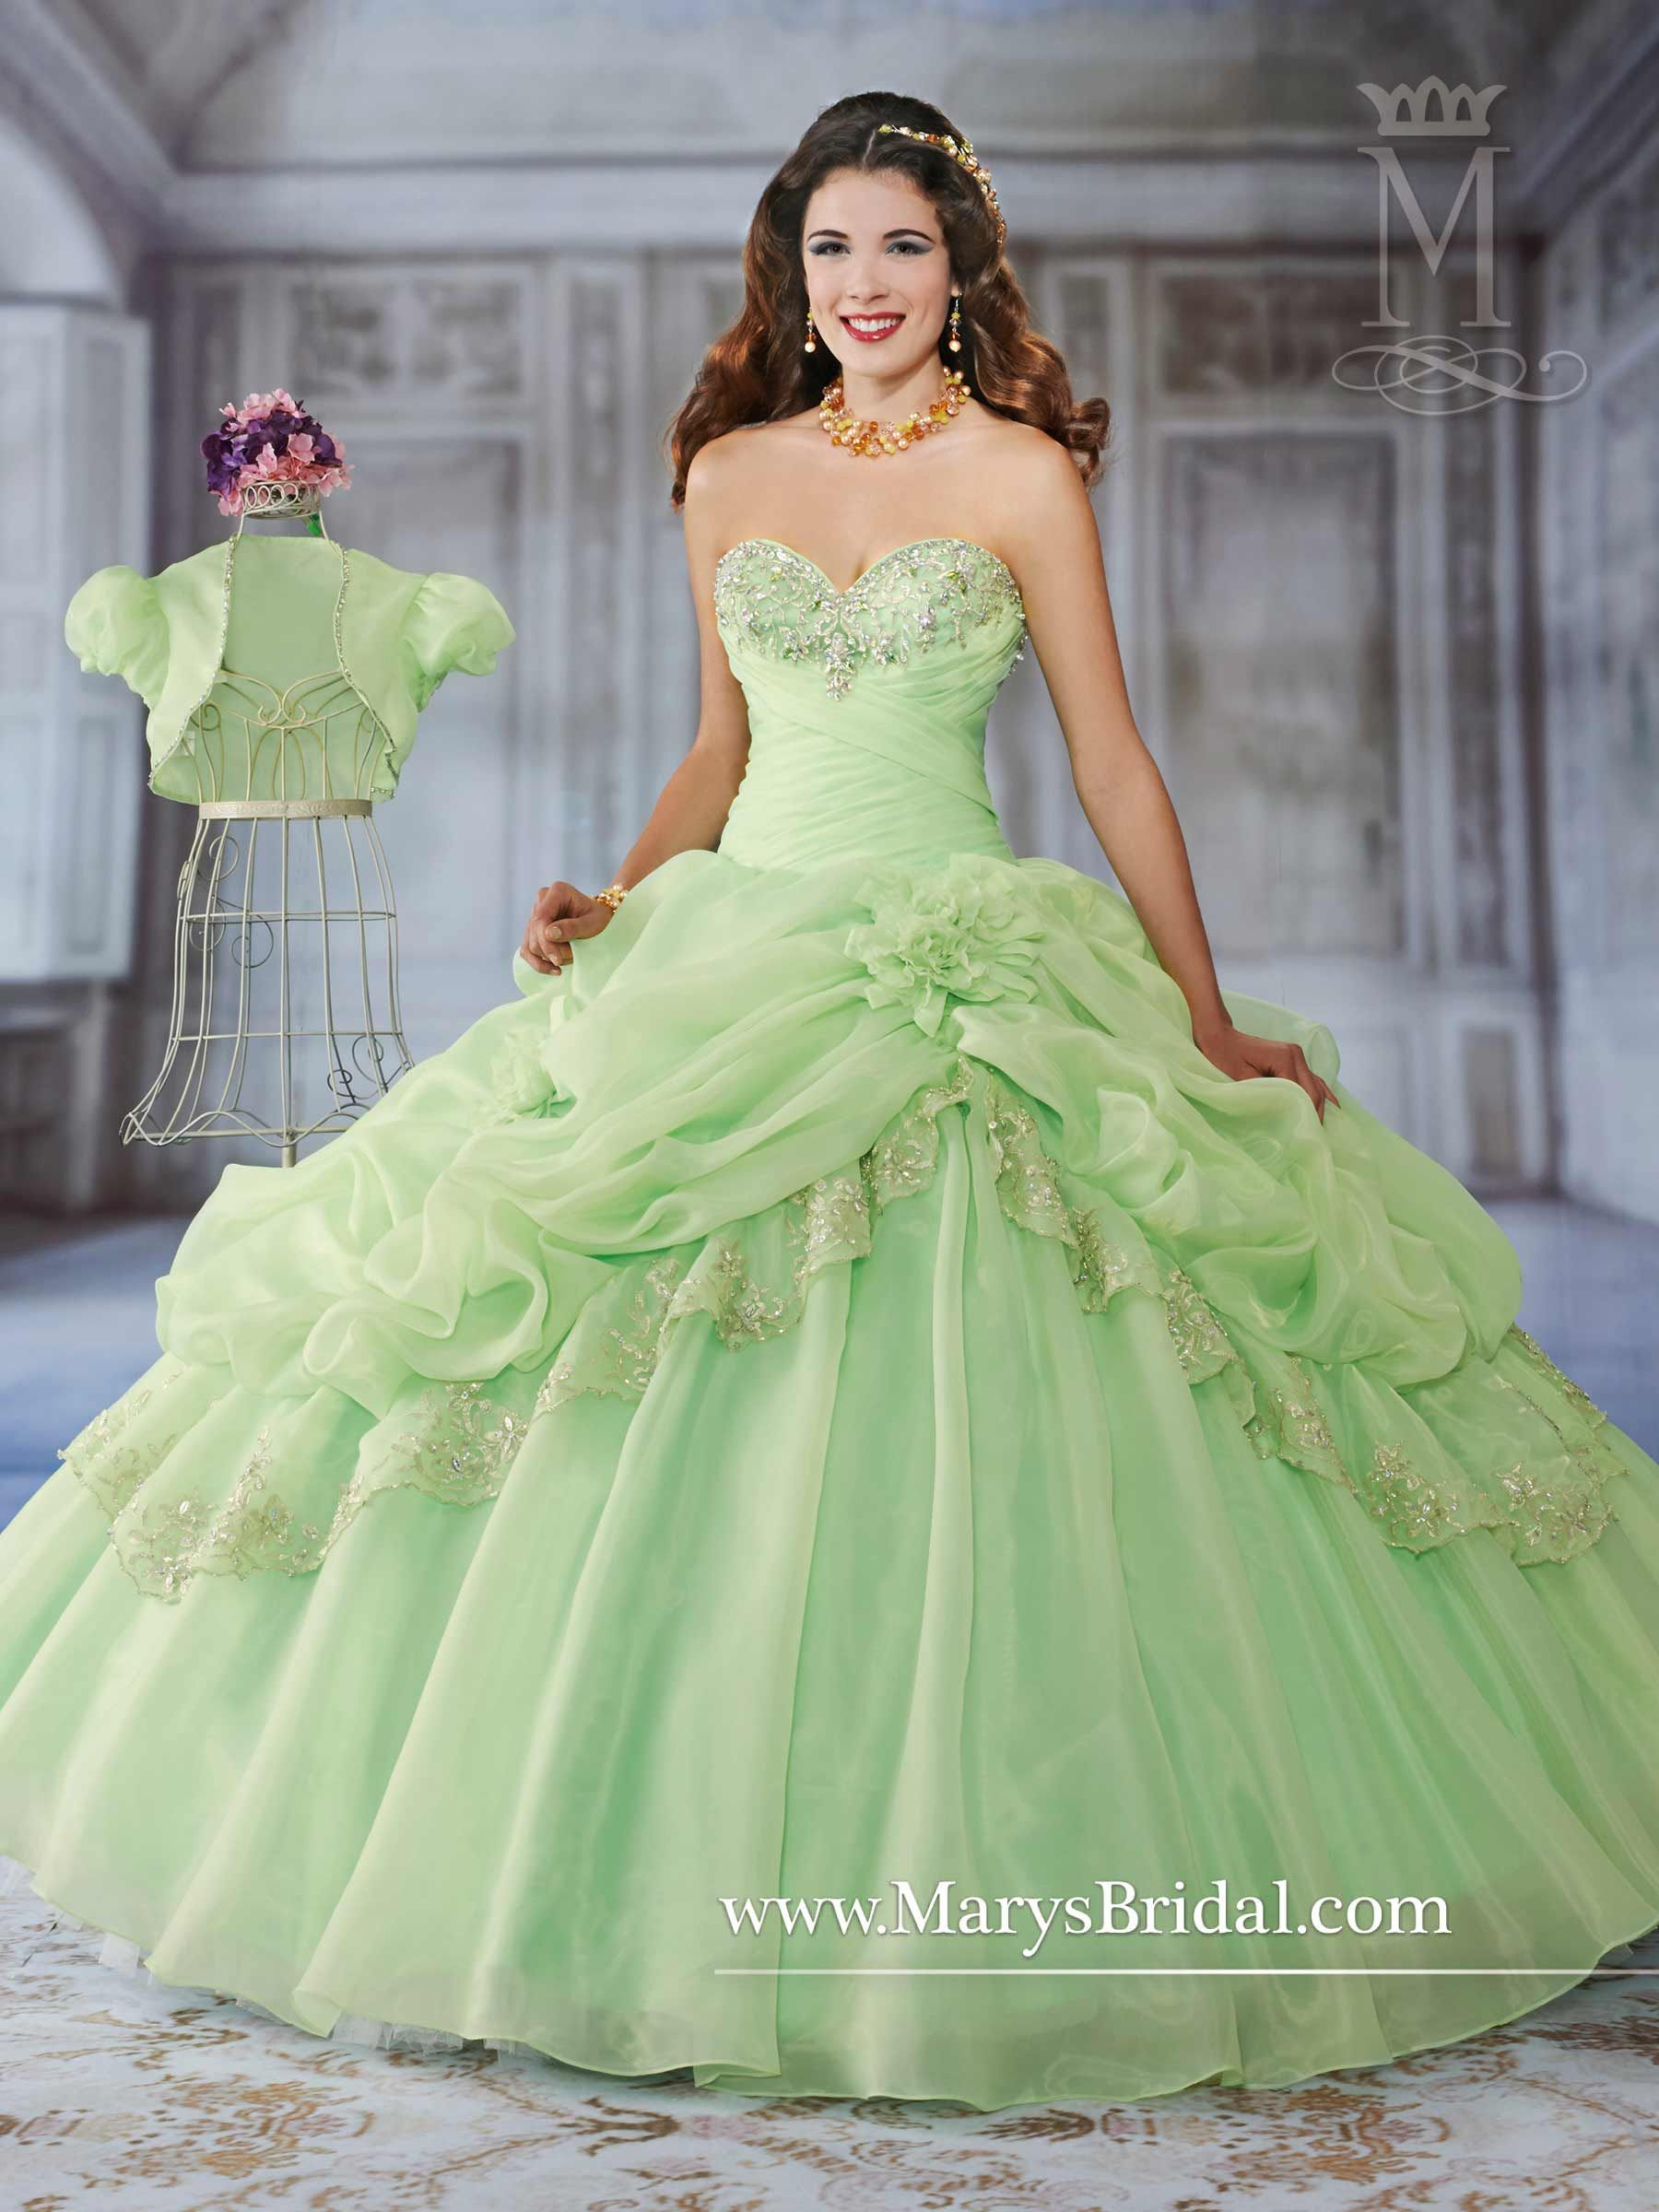 89b362b99d8 Mary s Princess collection of Quinceanera dresses